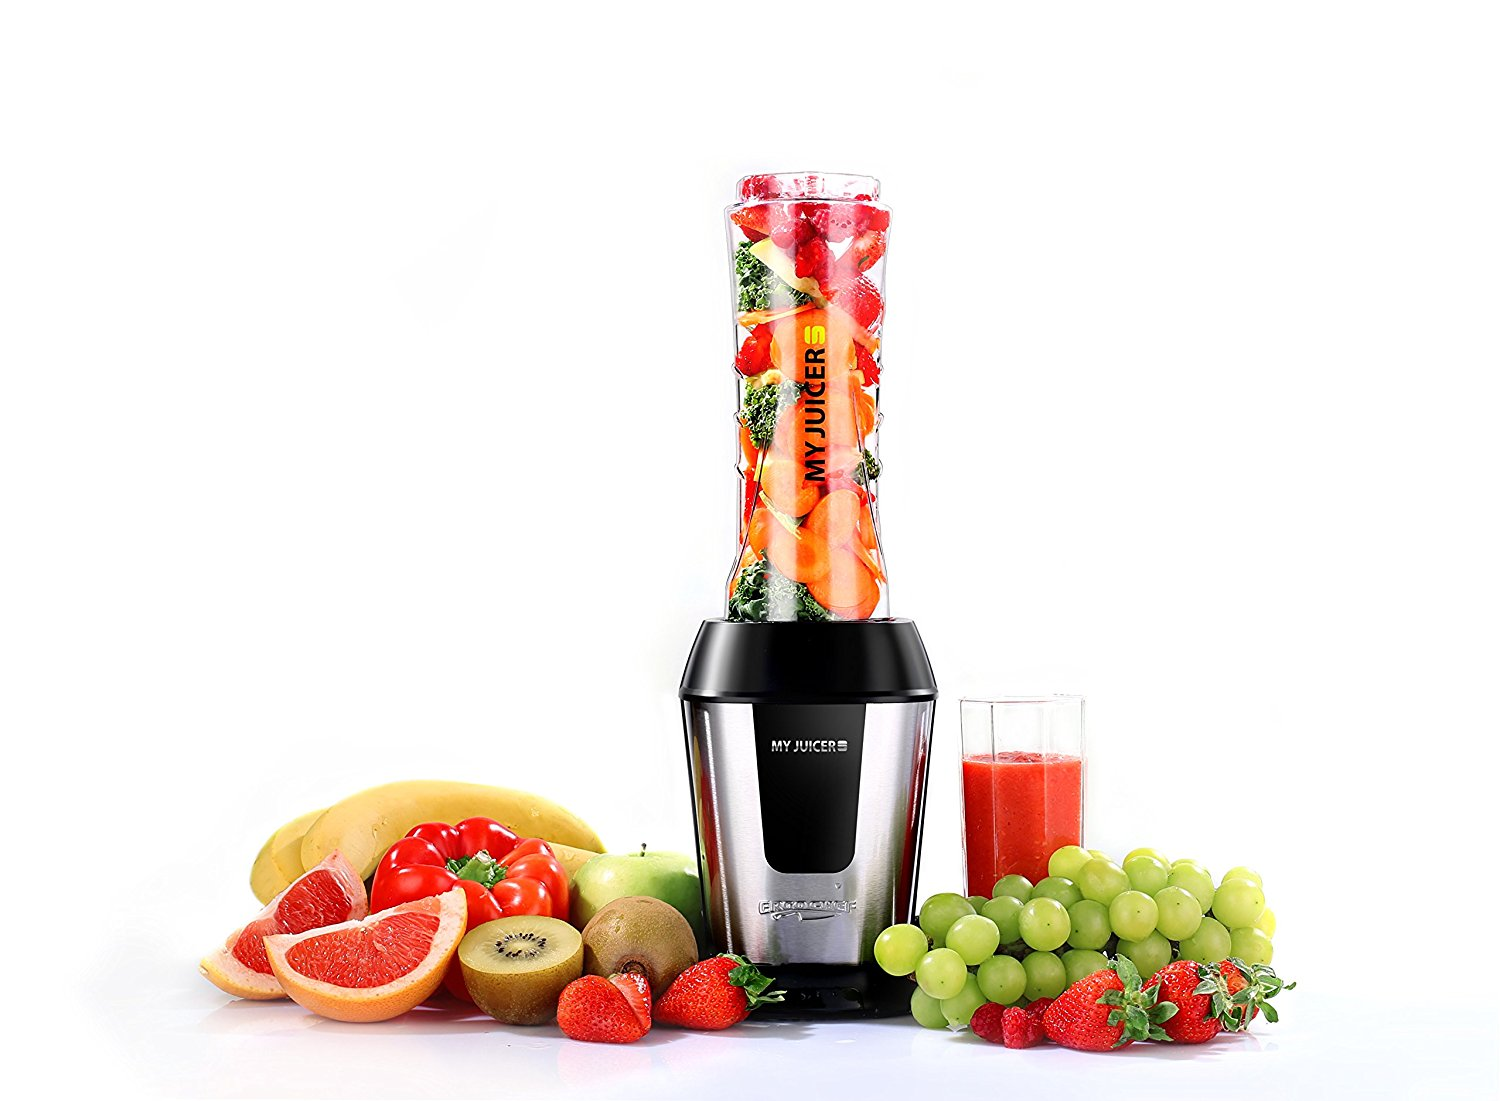 Sinh tố Ergo chef 3 generation portable Juicer my Juicer S (double cup configuration)